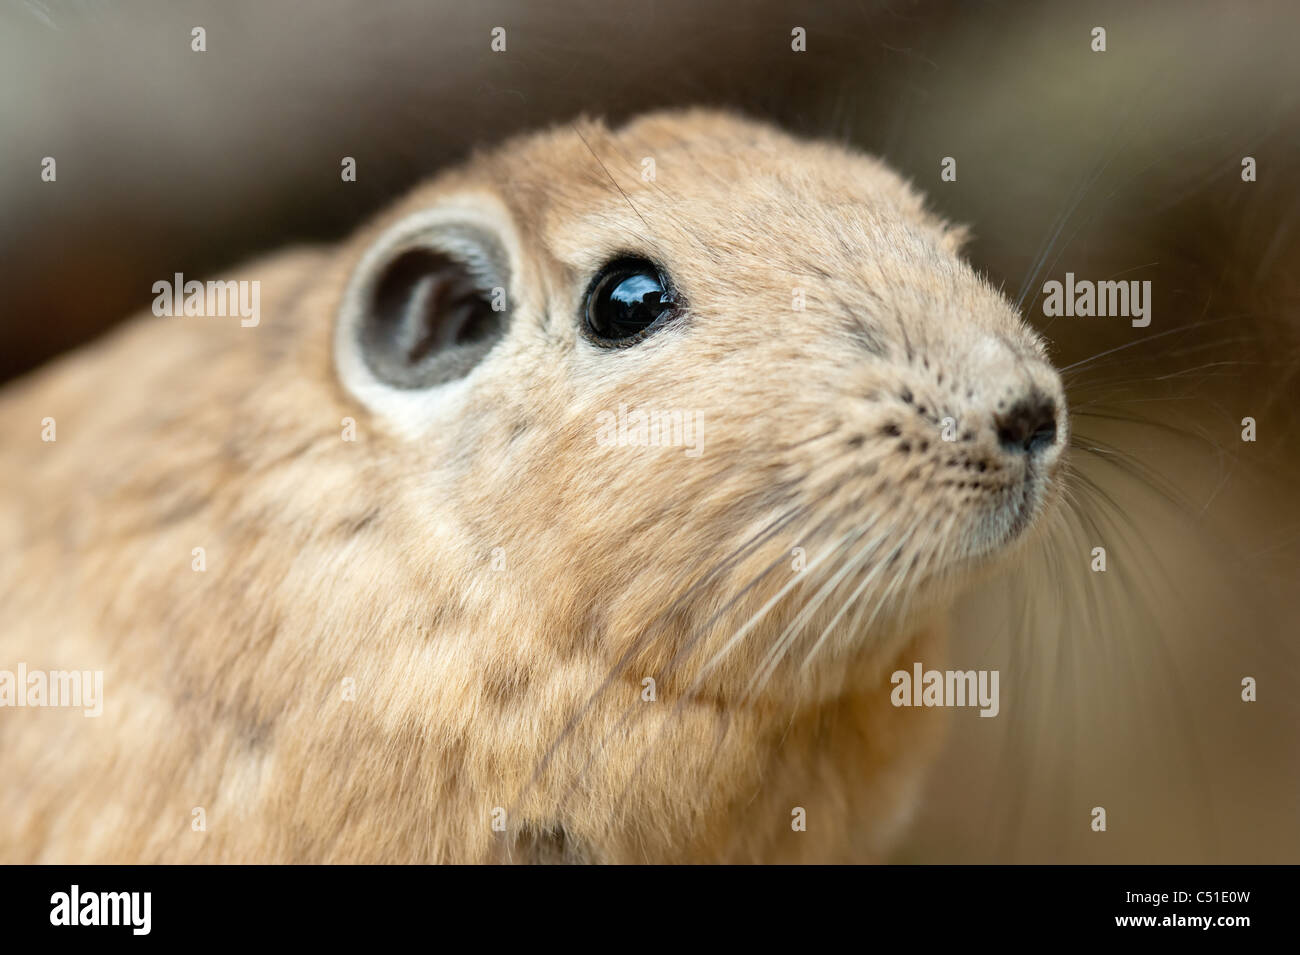 gundis are unusual rodents from north africa - Stock Image